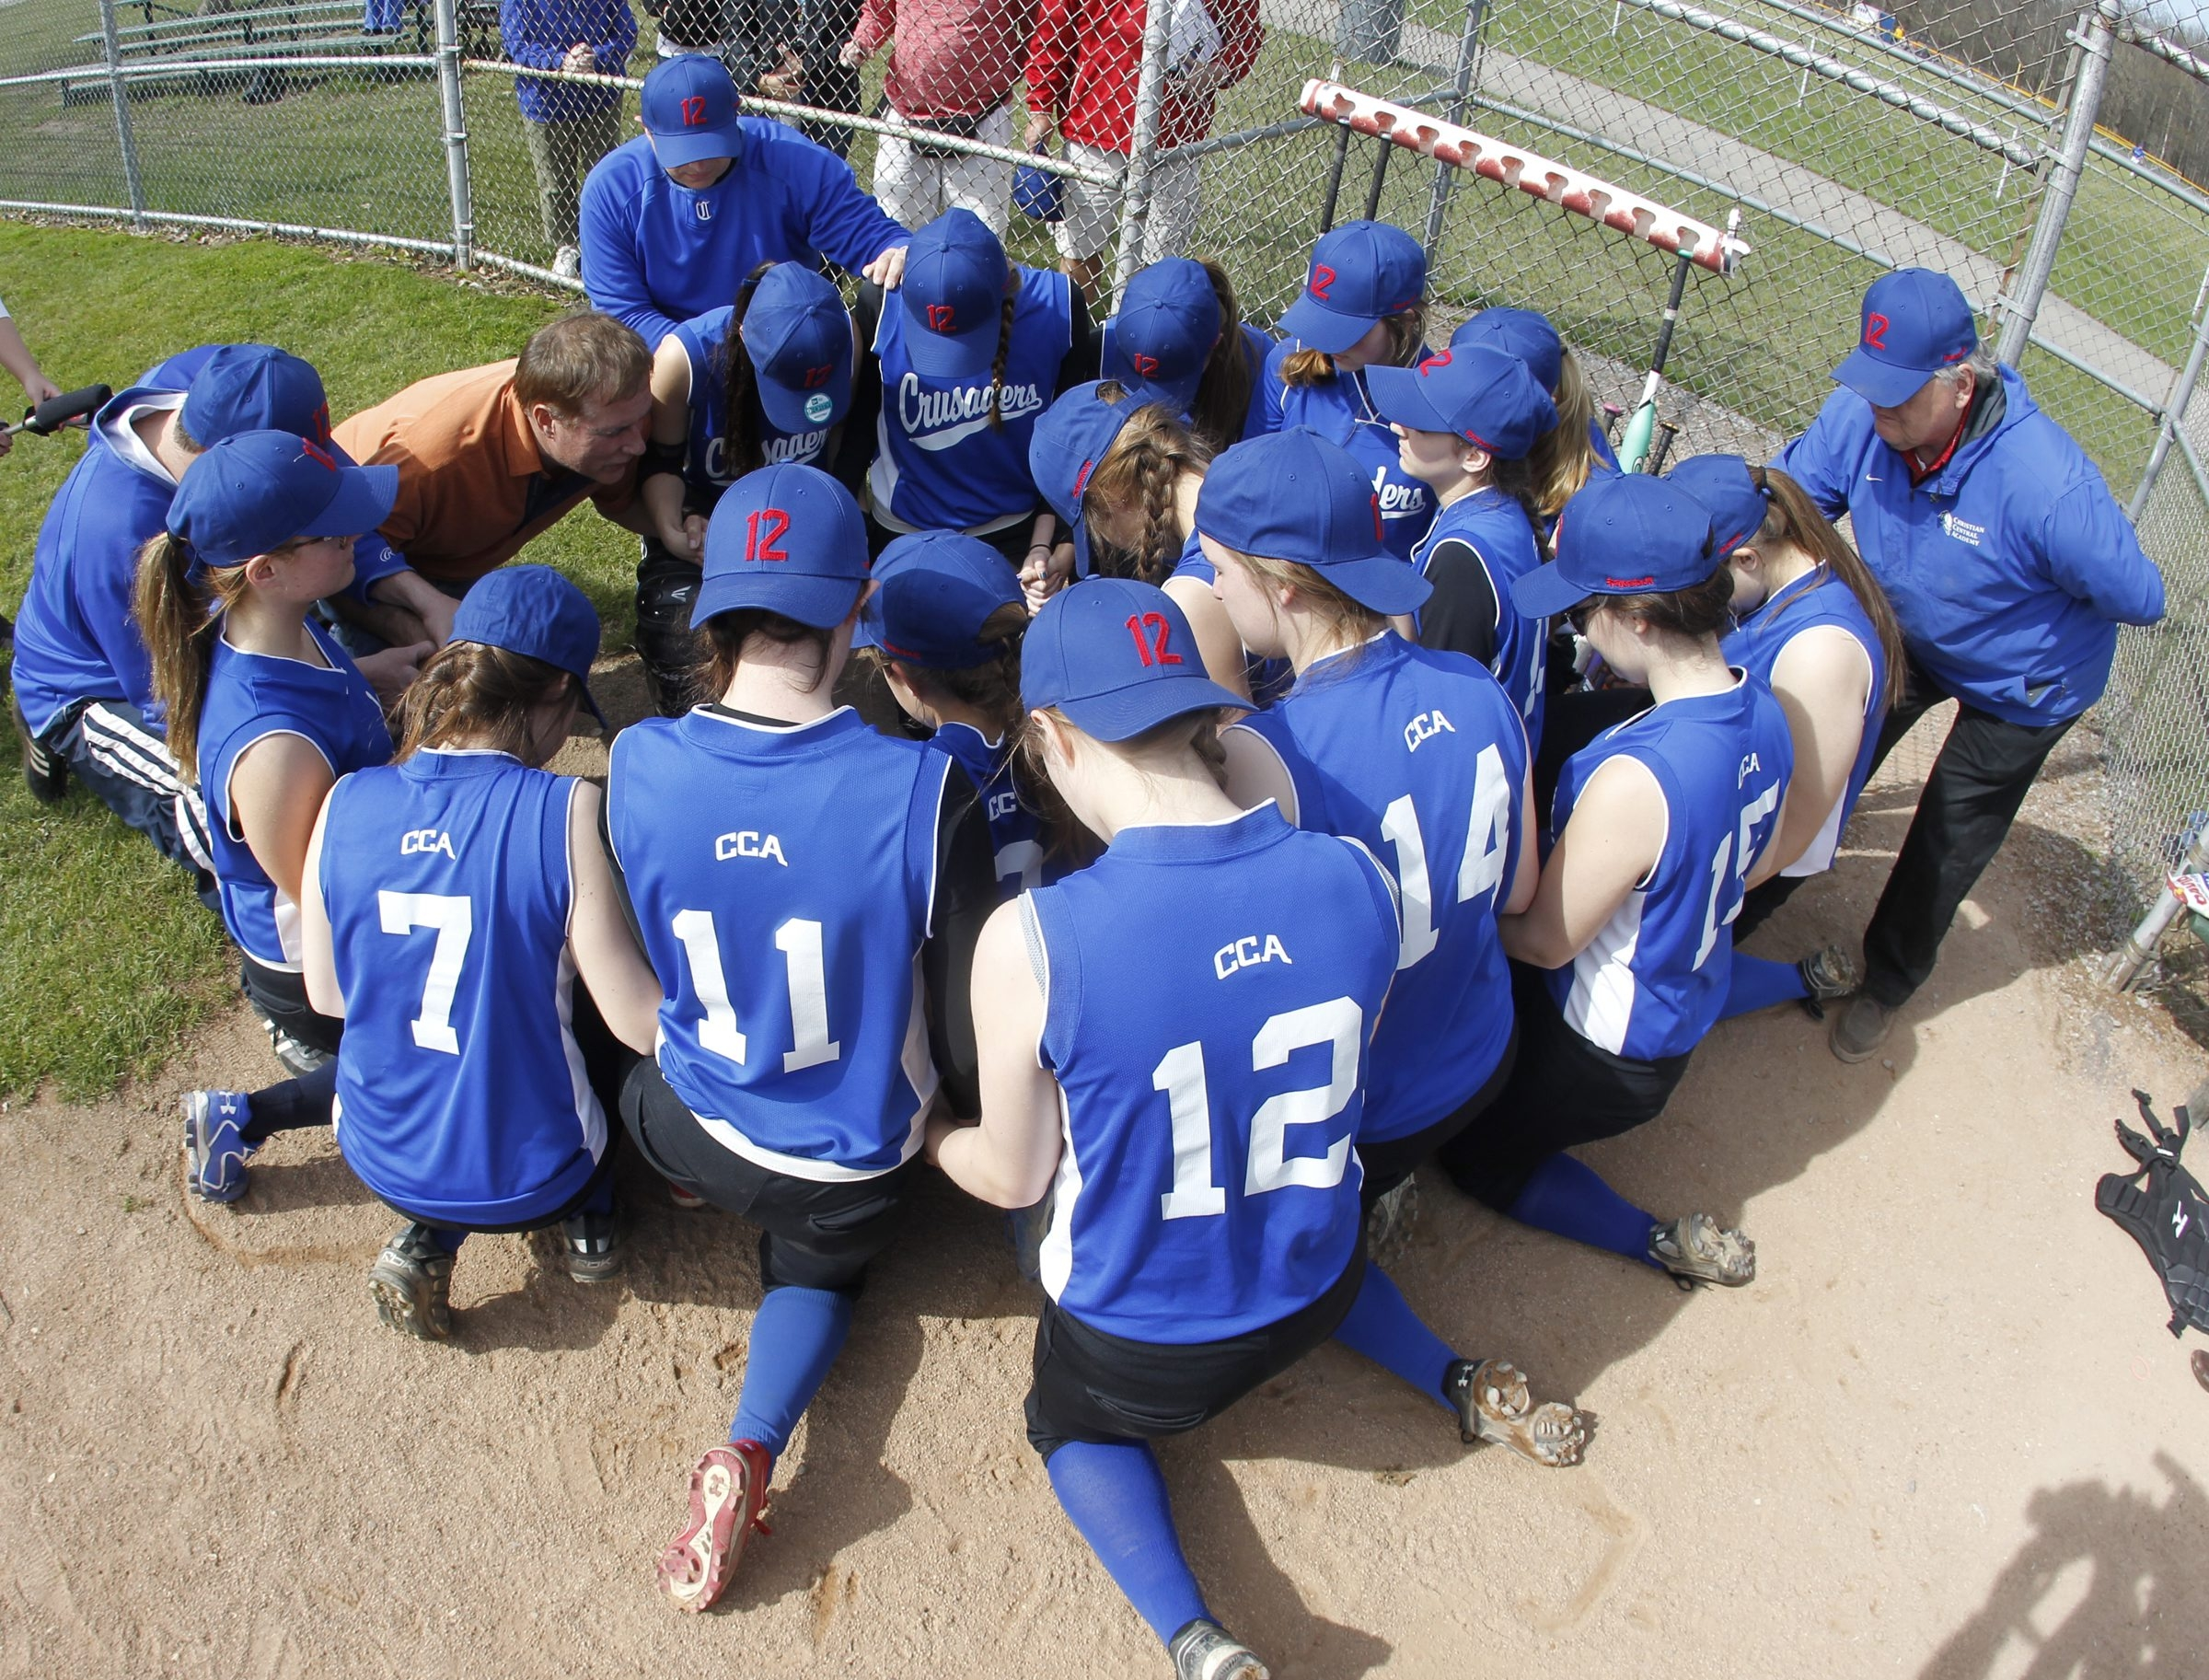 Dan Kelly, Brother of Buffalo Bills Hall of Fame quarterback Jim, prays over the Christian Central softball team on, Wednesday, May 7, 2014.The Christian Central baseball and softball team  will wear special hats in honor of Jim Kelly and his cancer fight. (Photo by Harry Scull Jr. /Buffalo News)